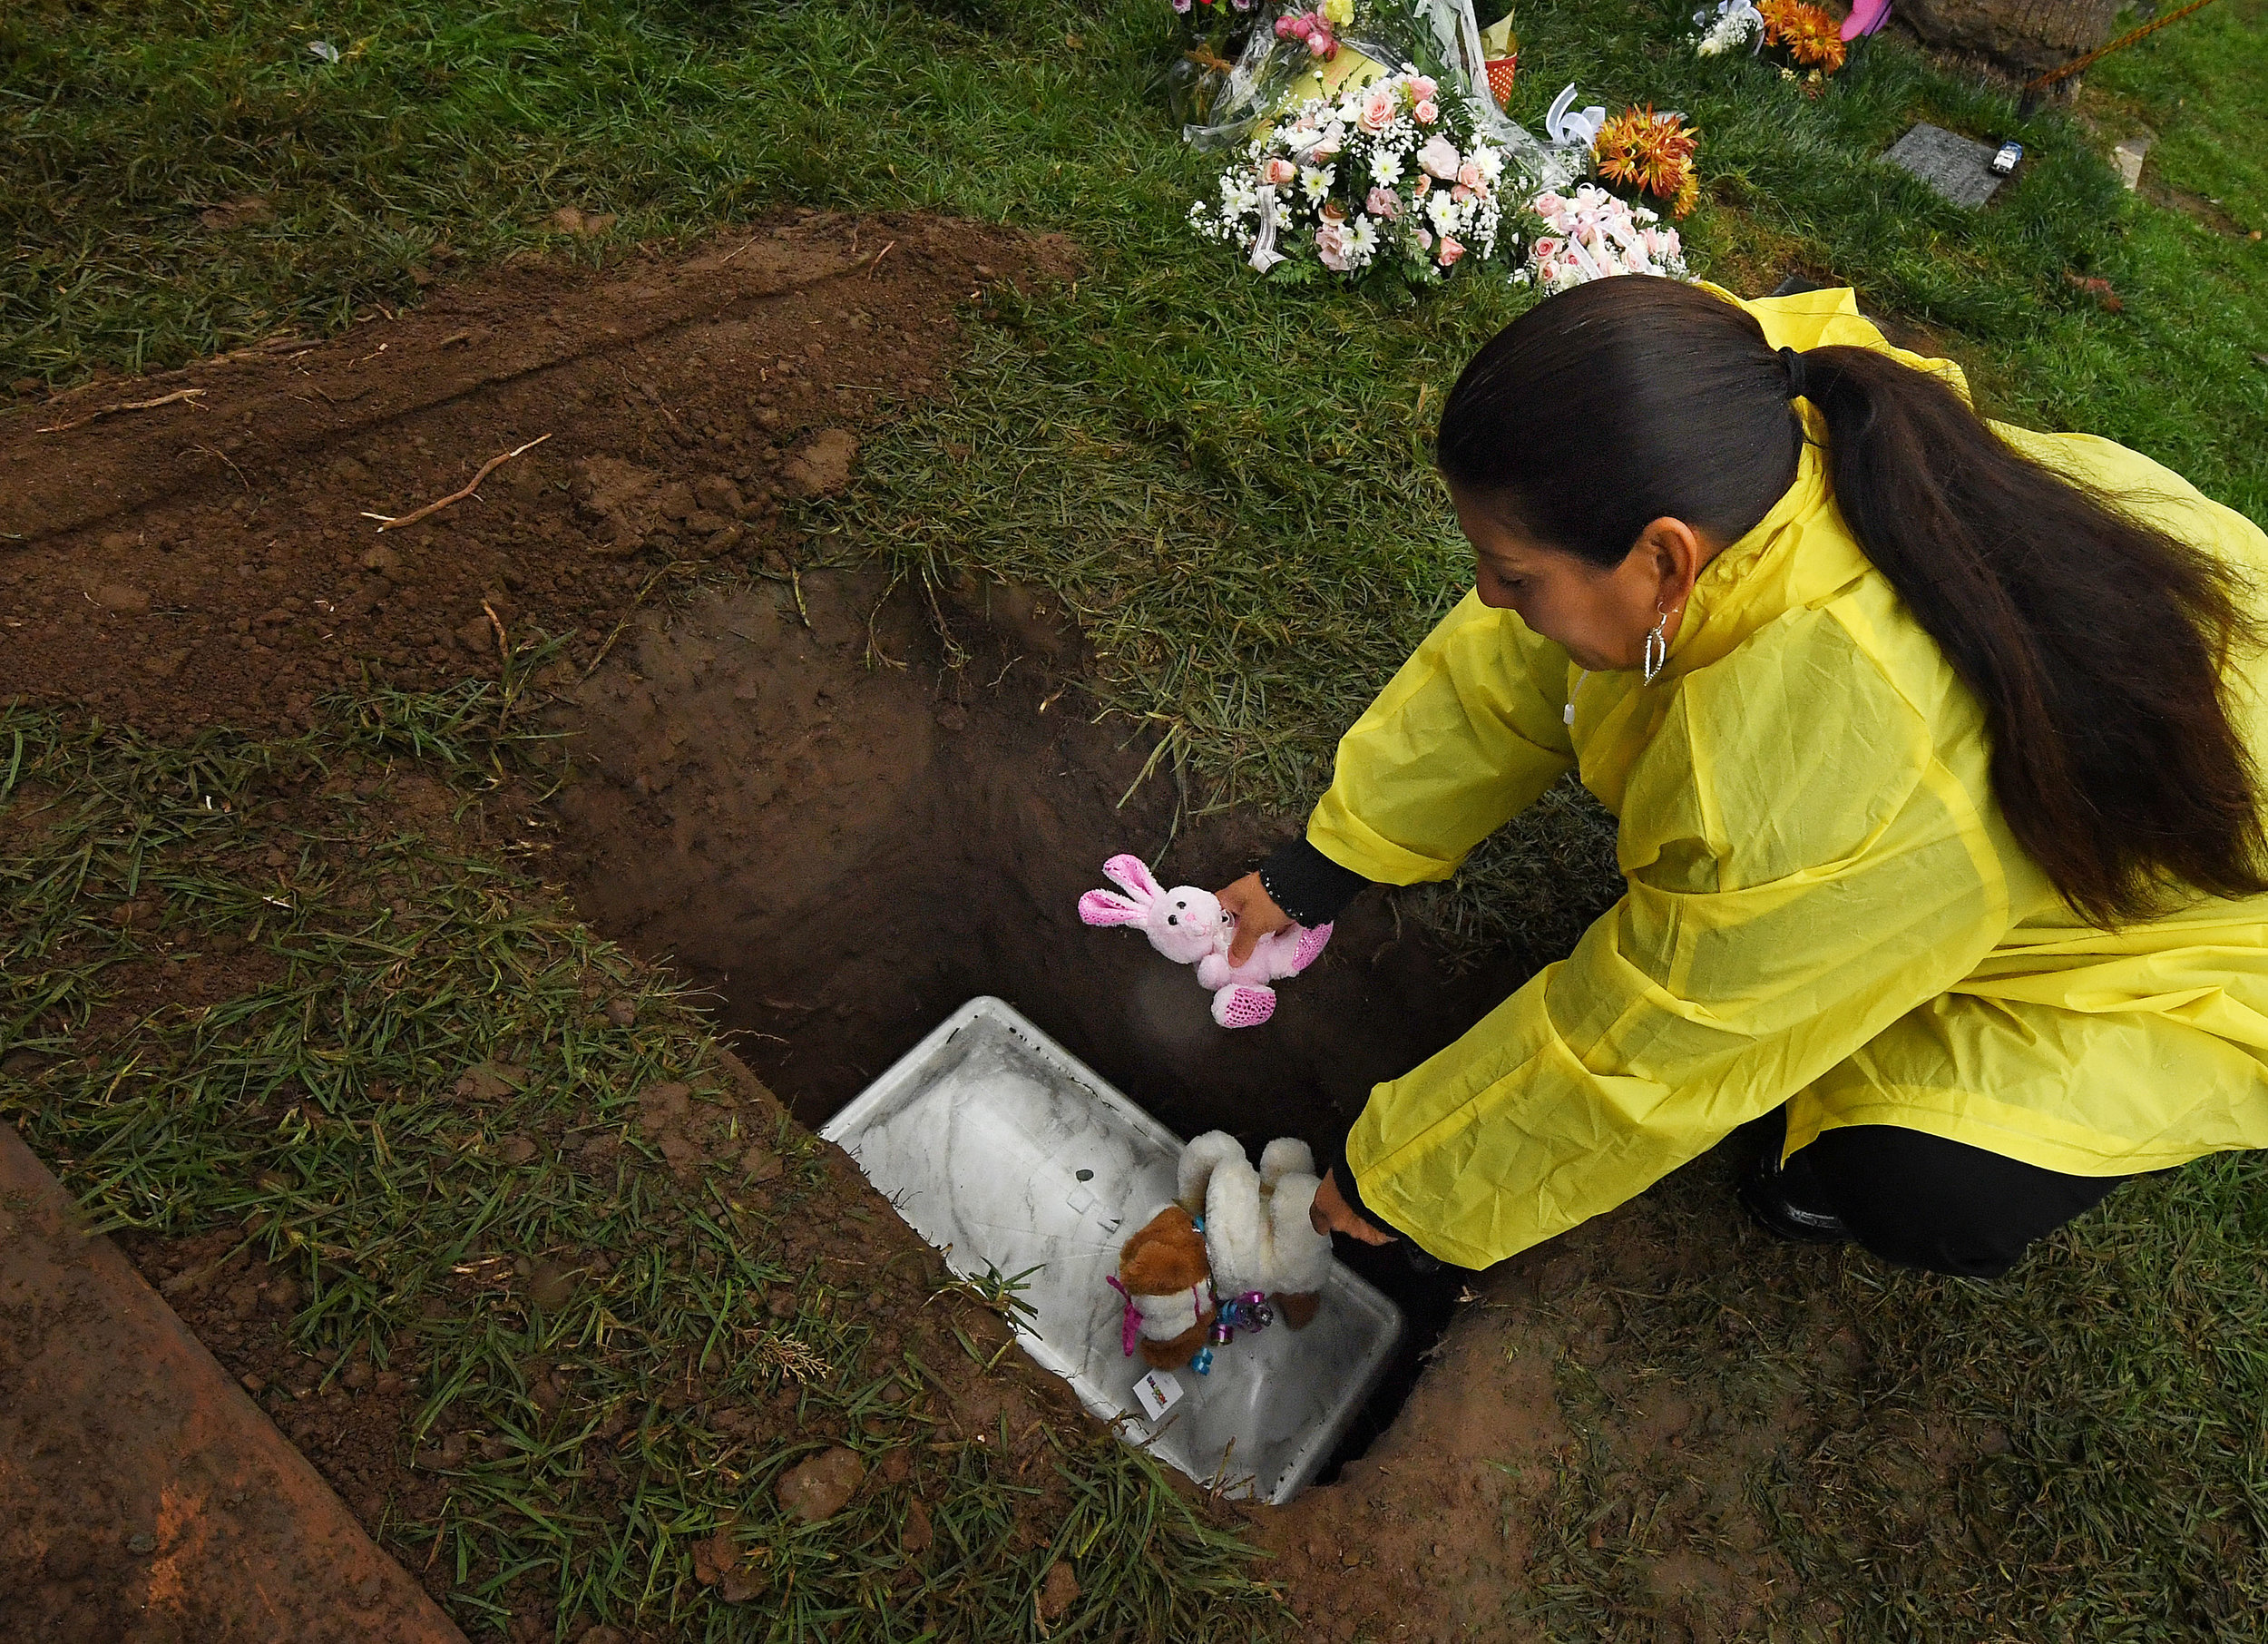 Monica Montejano, from Corona, places stuffed animals atop the grave of Baby Jane Doe at Sunnyslope Cemetery in Corona, Thursday, December 6, 2018. The newborn infant was found in a cardboard box near the 15 freeway in Corona in July. Corona police and fire departments along with others contributed to make the funeral possible for the child. Police are still searching for the person or persons responsible.